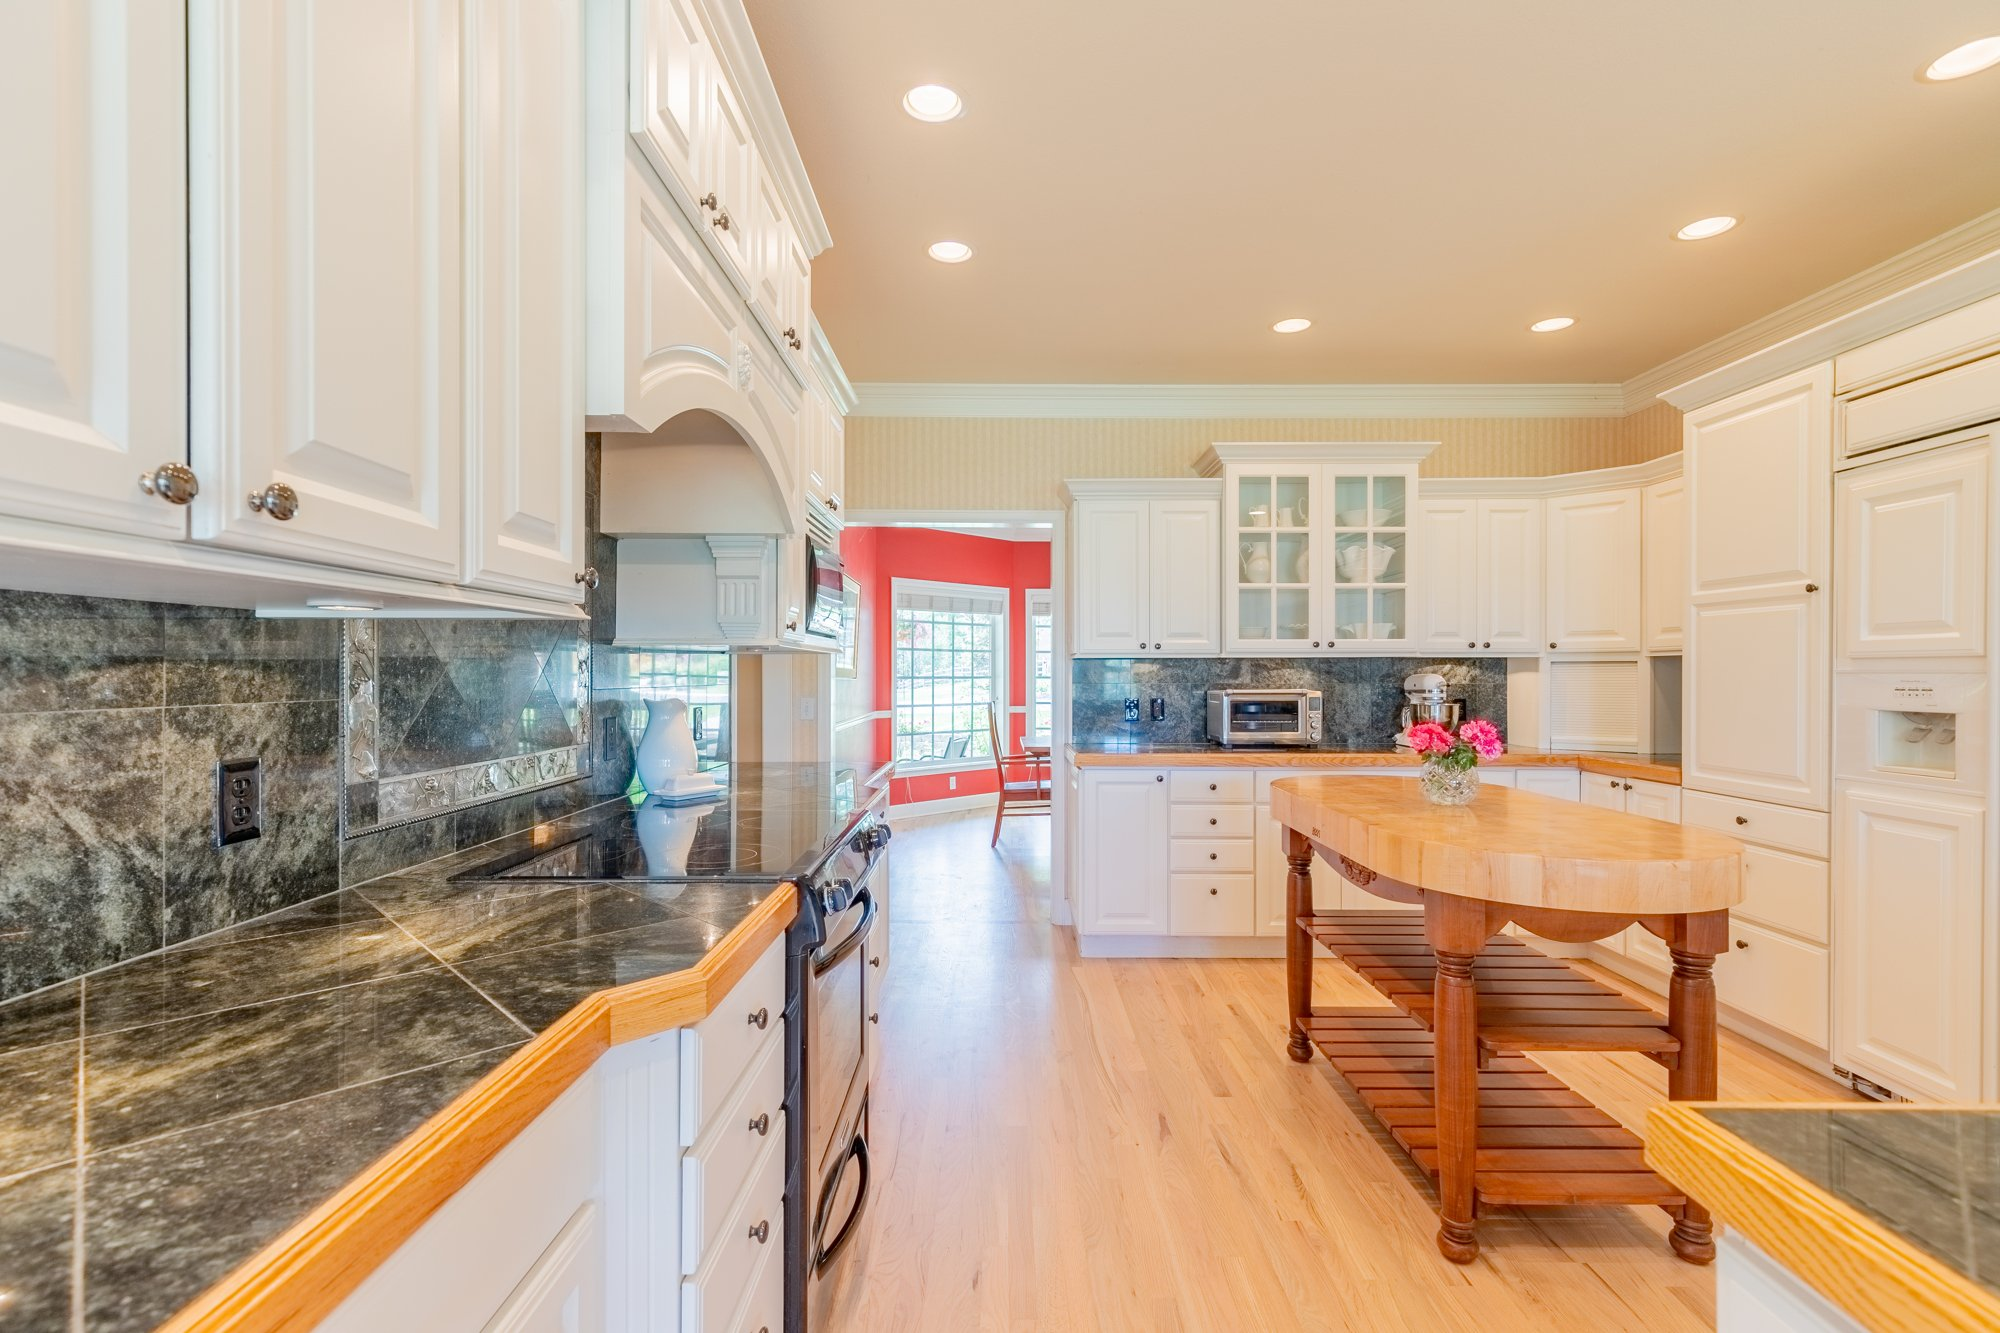 Kitchen with Recessed Lighting - 2049 Brook Way Montrose, Co 81403 - Atha Team Luxury Real Estate